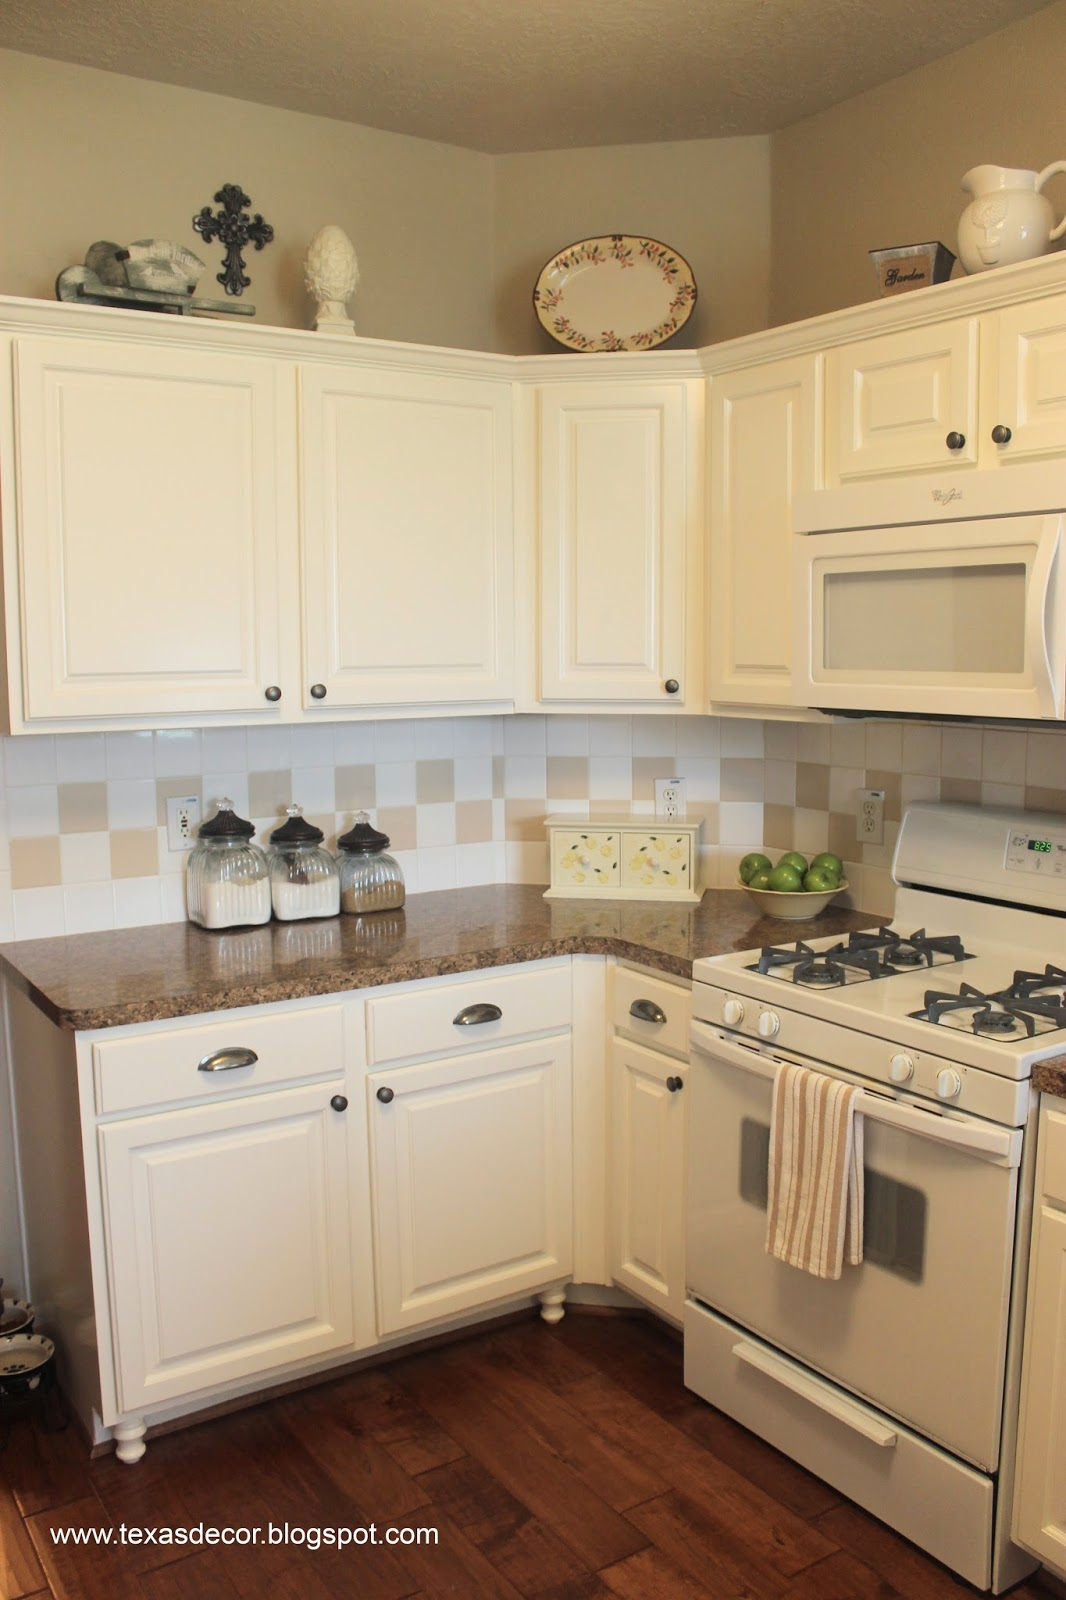 Texas Decor: Painted Kitchen Cabinet Reveal